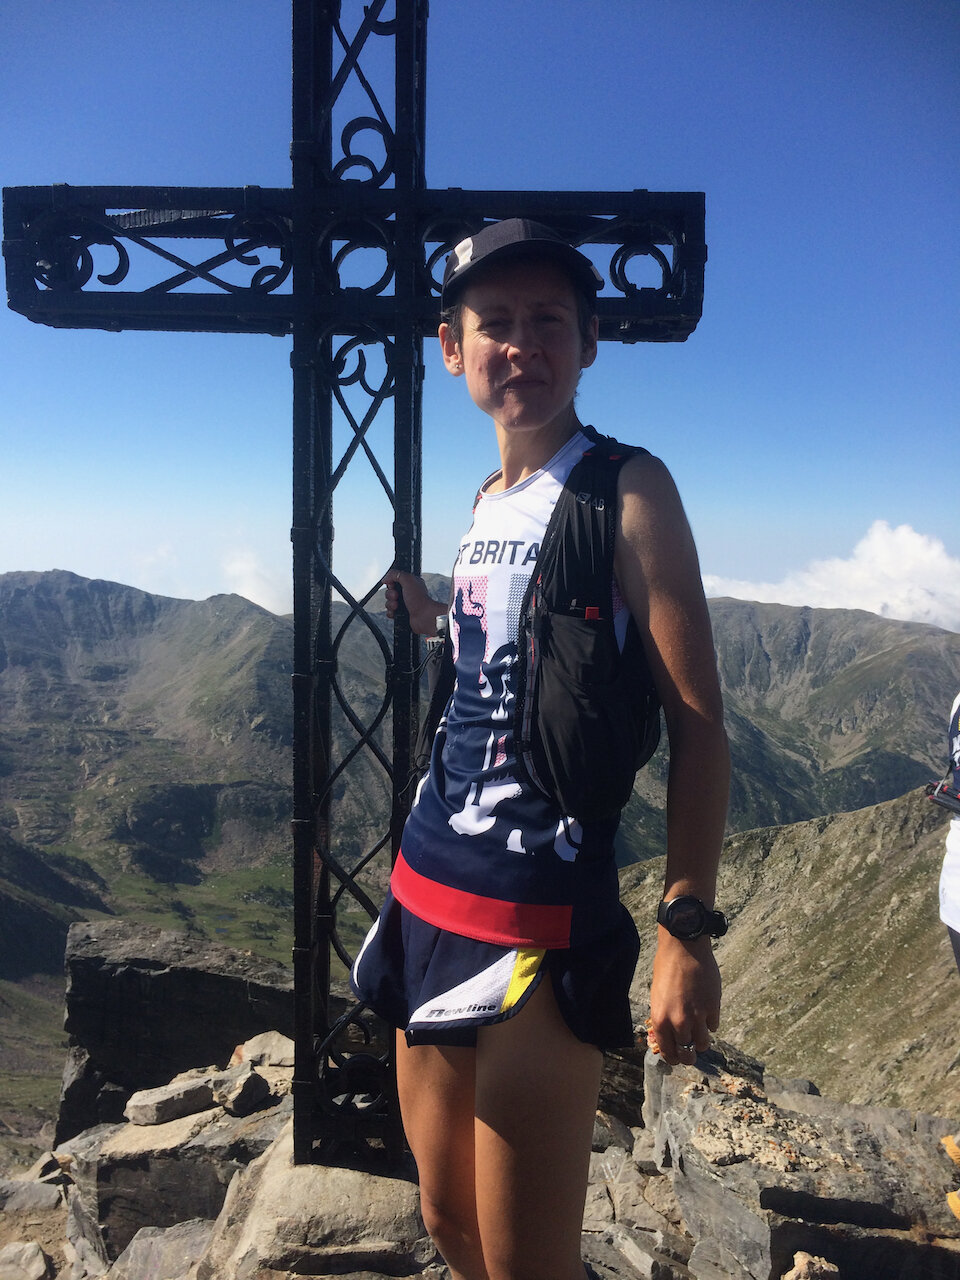 Clare at the top of Canigou